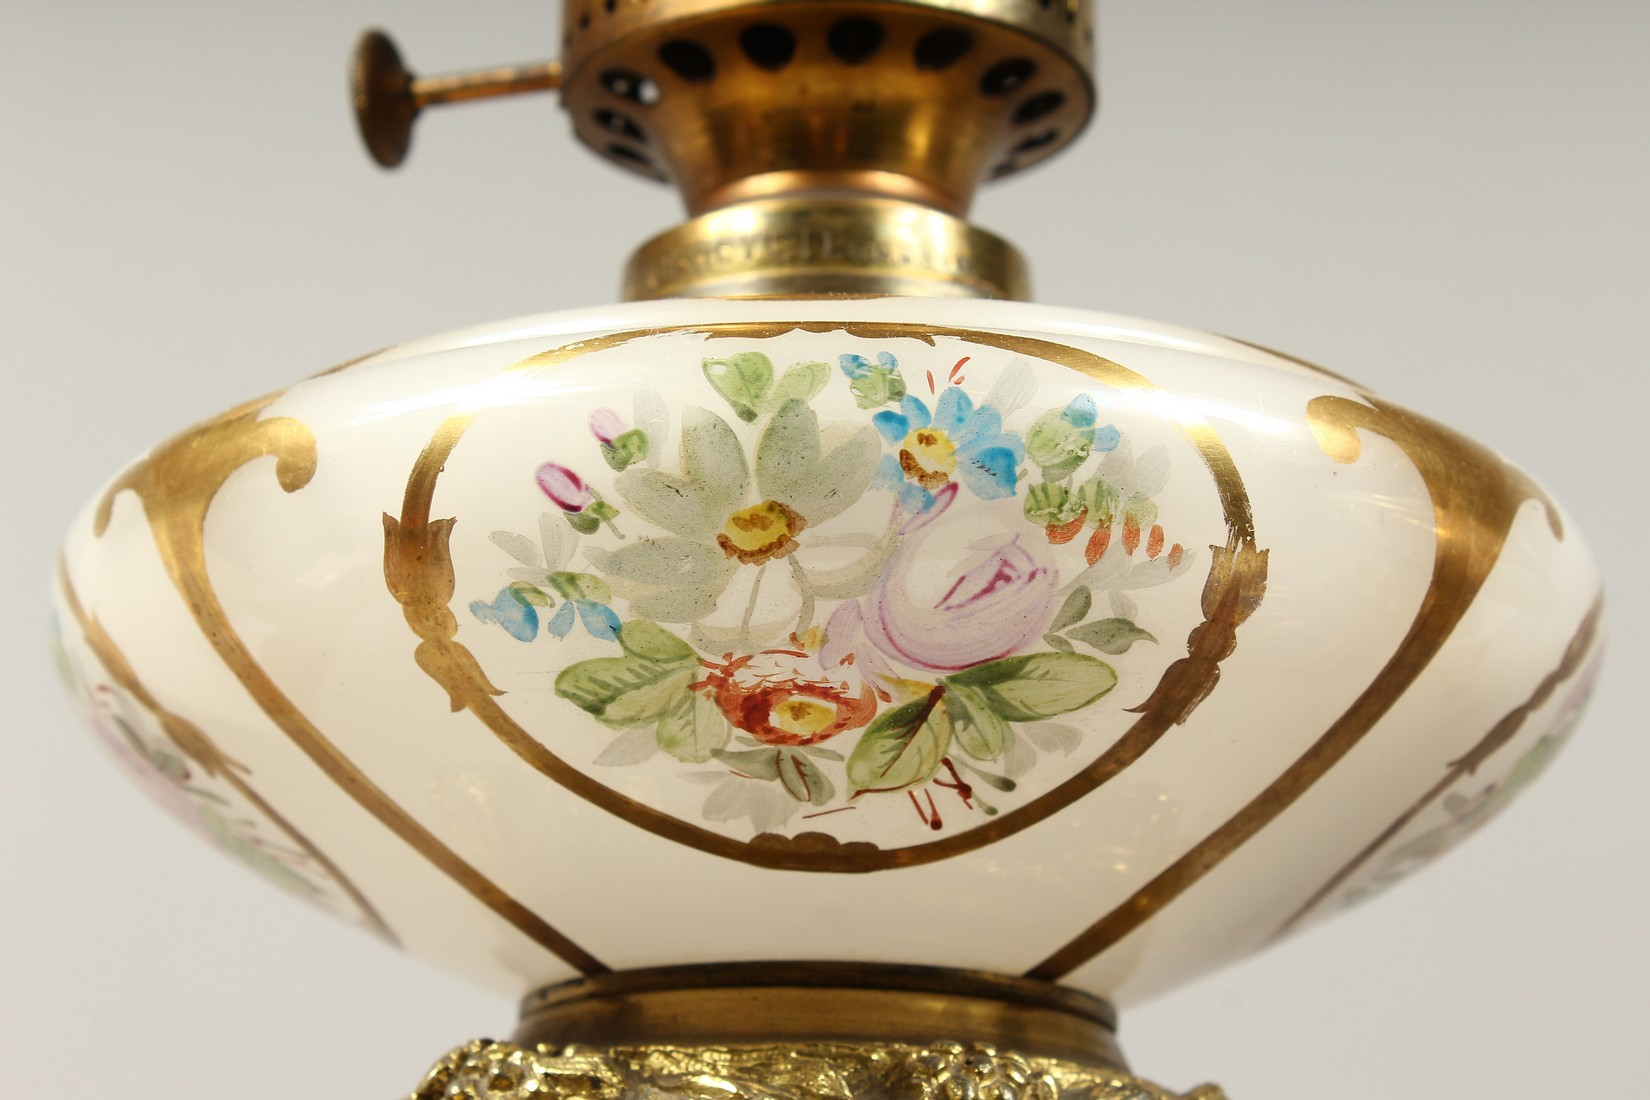 A SUPERB PAIR OF 19TH CENTURY FRENCH PORCELAIN AND GILT BRONZE LAMPS ON STANDS, painted with - Image 14 of 24